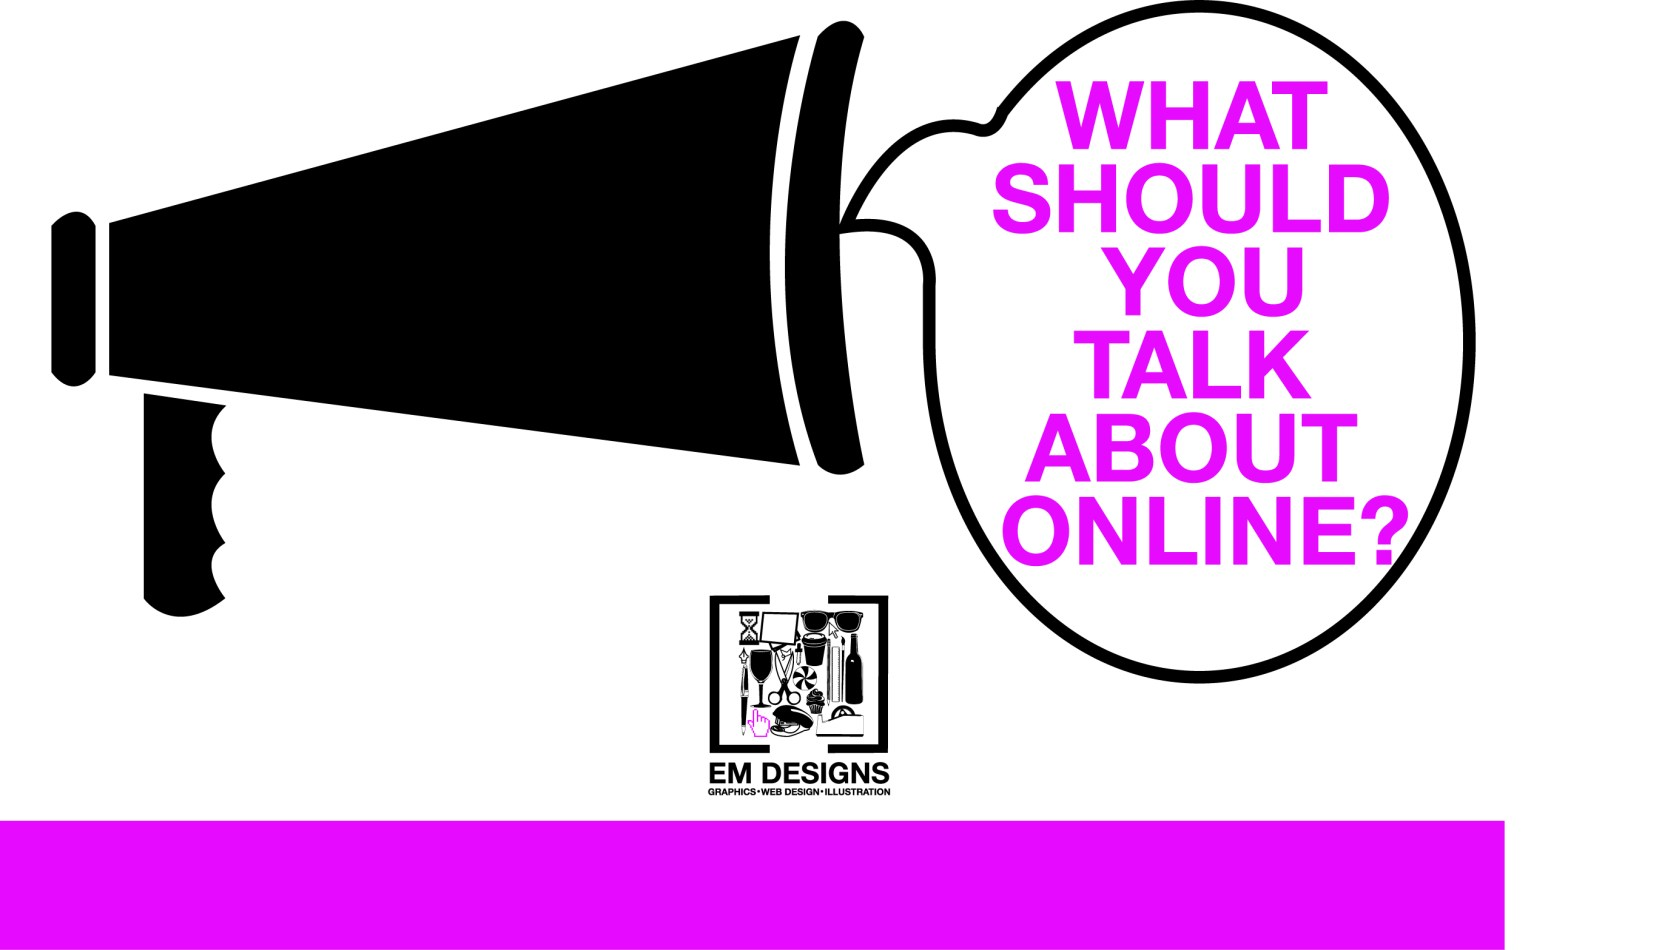 What shoul you talk about online em designs social media consultant